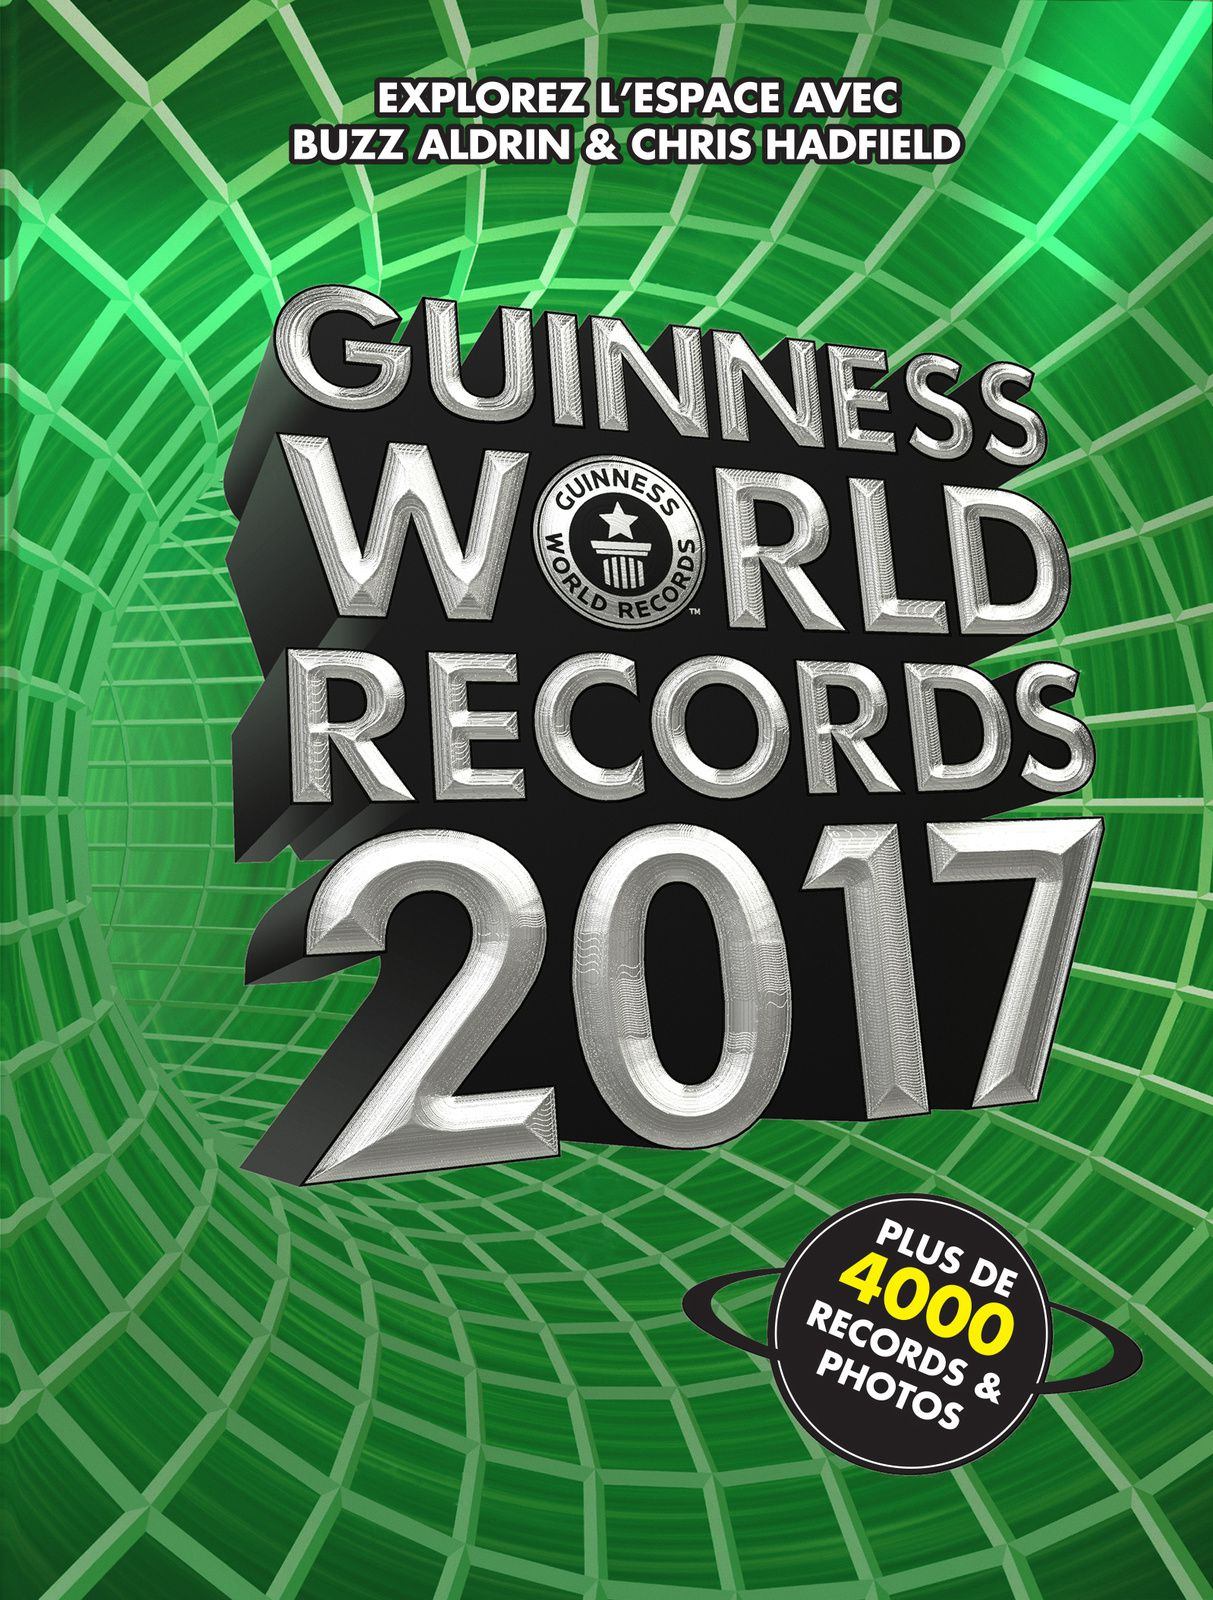 [REVUE LIVRE GAMING] GUINNESS WORLD RECORDS 2017 GAMER'S EDITION aux éditions HACHETTE PRATIQUE